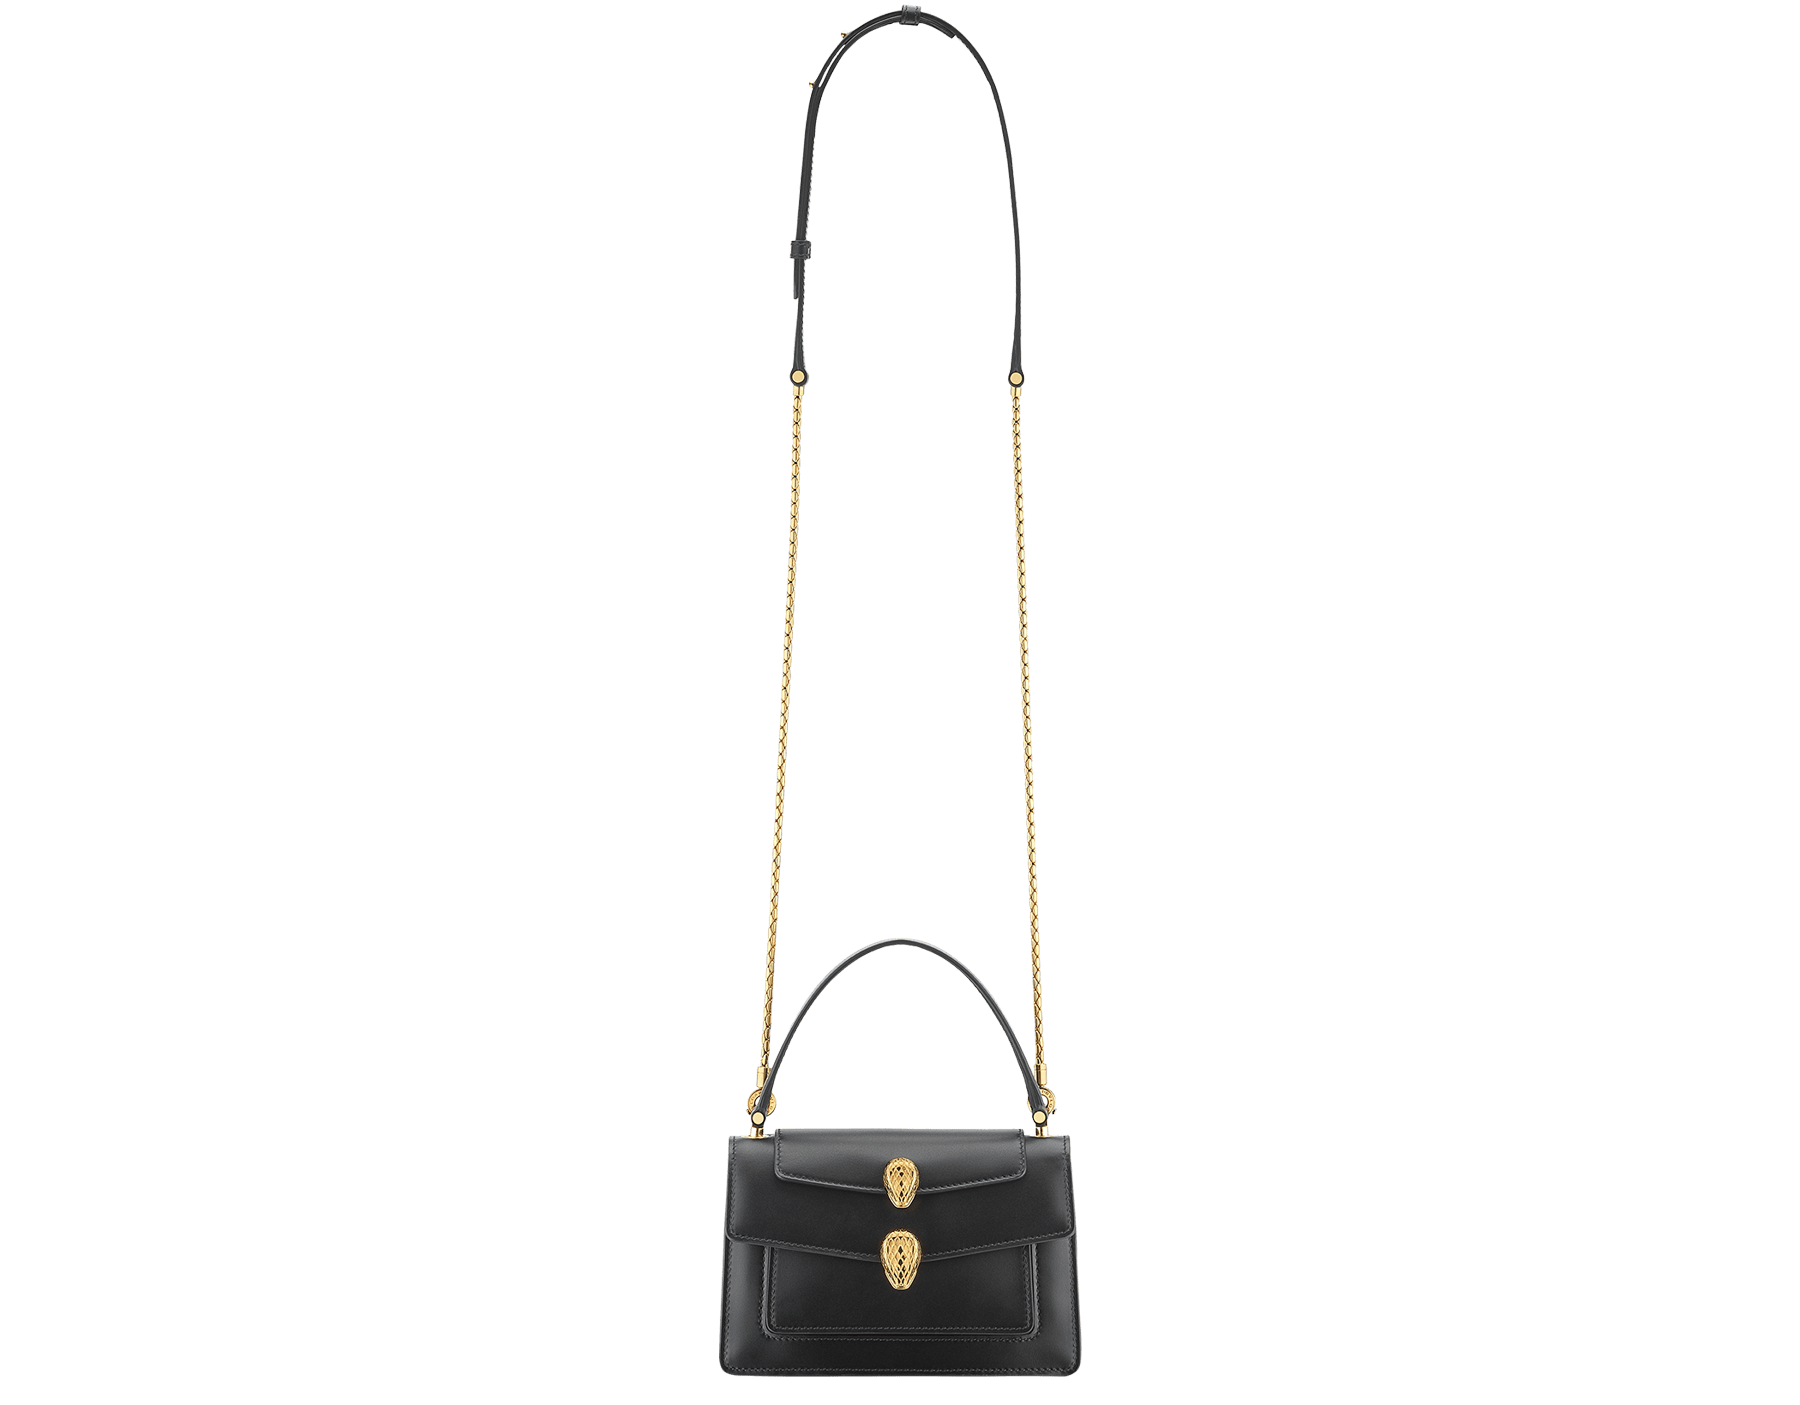 Alexander Wang x Bvlgari belt bag in smooth black calf leather. New double Serpenti head closure in antique gold plated brass with tempting red enamel eyes. Limited edition. 288737 image 6